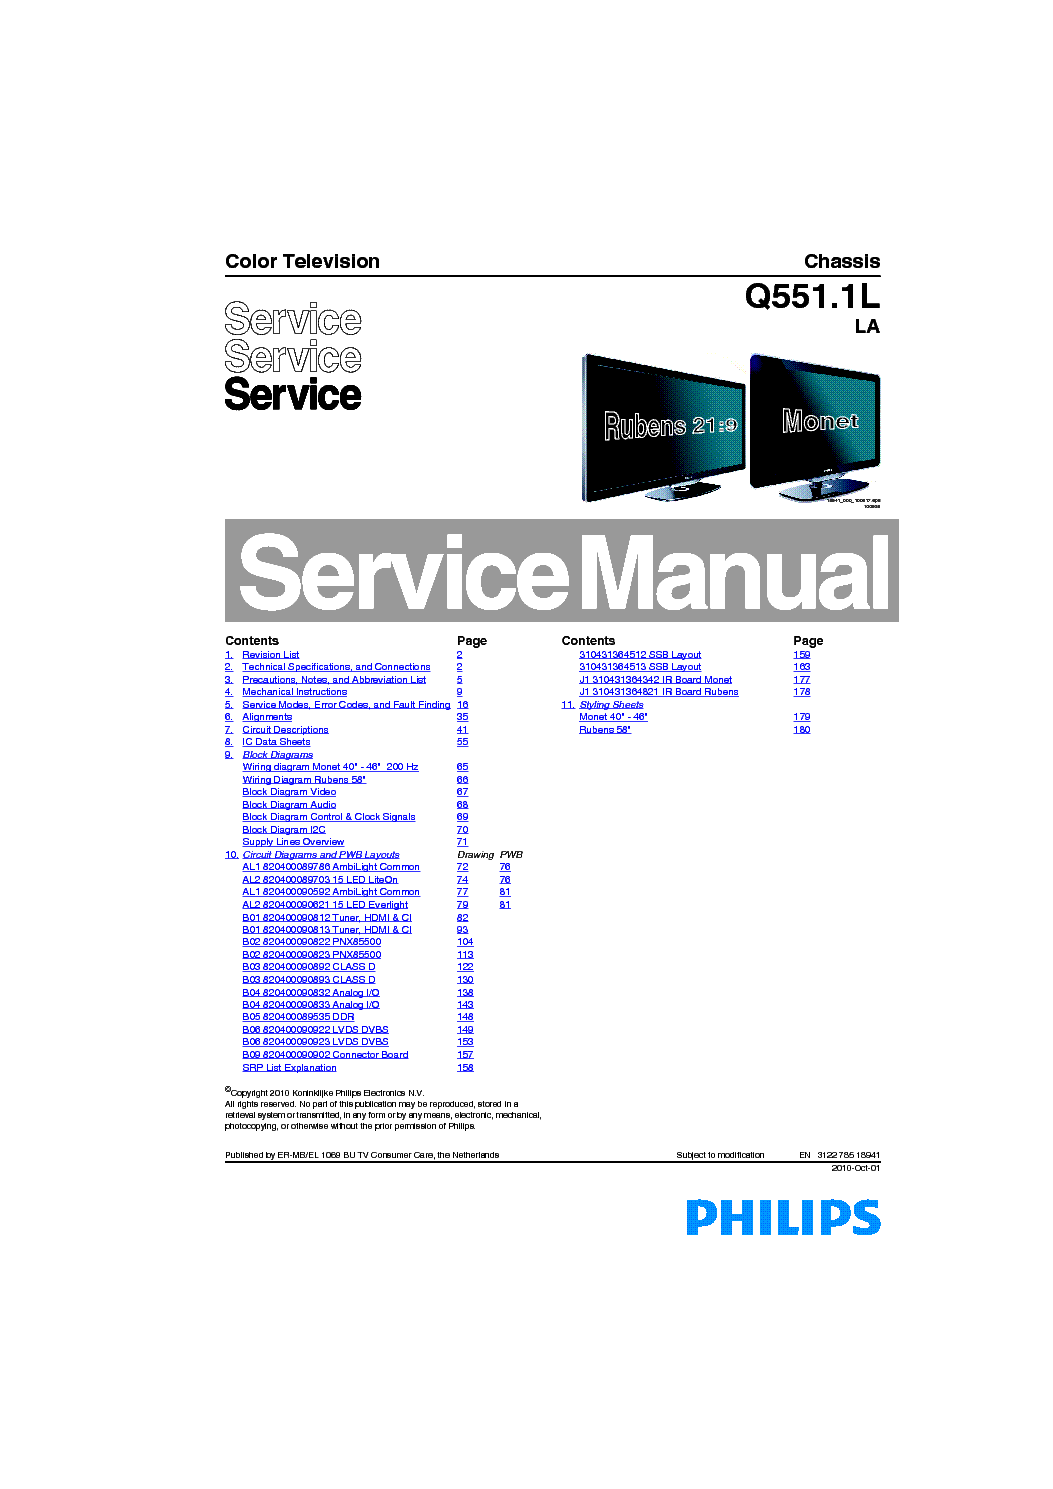 PHILIPS Q551.1L LA CHASSIS LCD TV SM service manual